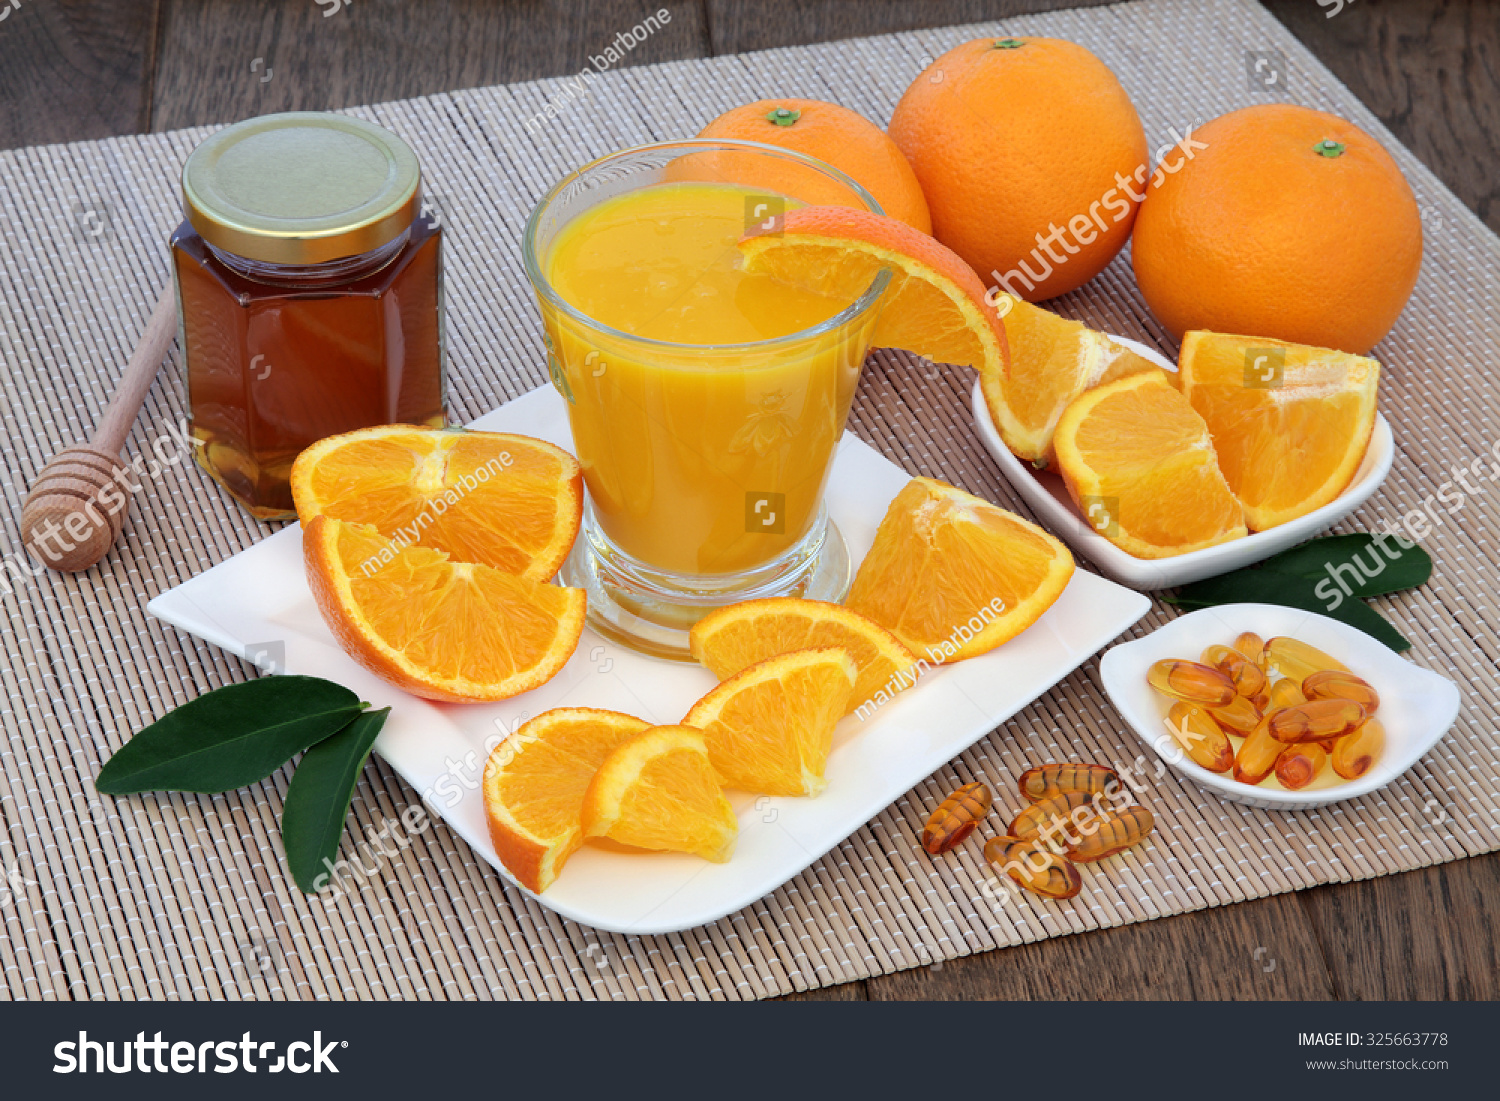 does vitamin c change over time in orange juice Freshly squeezed orange juice contains approximately 9 grams of citric acid per liter, while commercially processed orange juice contains 17 grams per liter freshly squeezed orange juice is also high in vitamin c and minerals such as potassium, thiamine and folic acid.